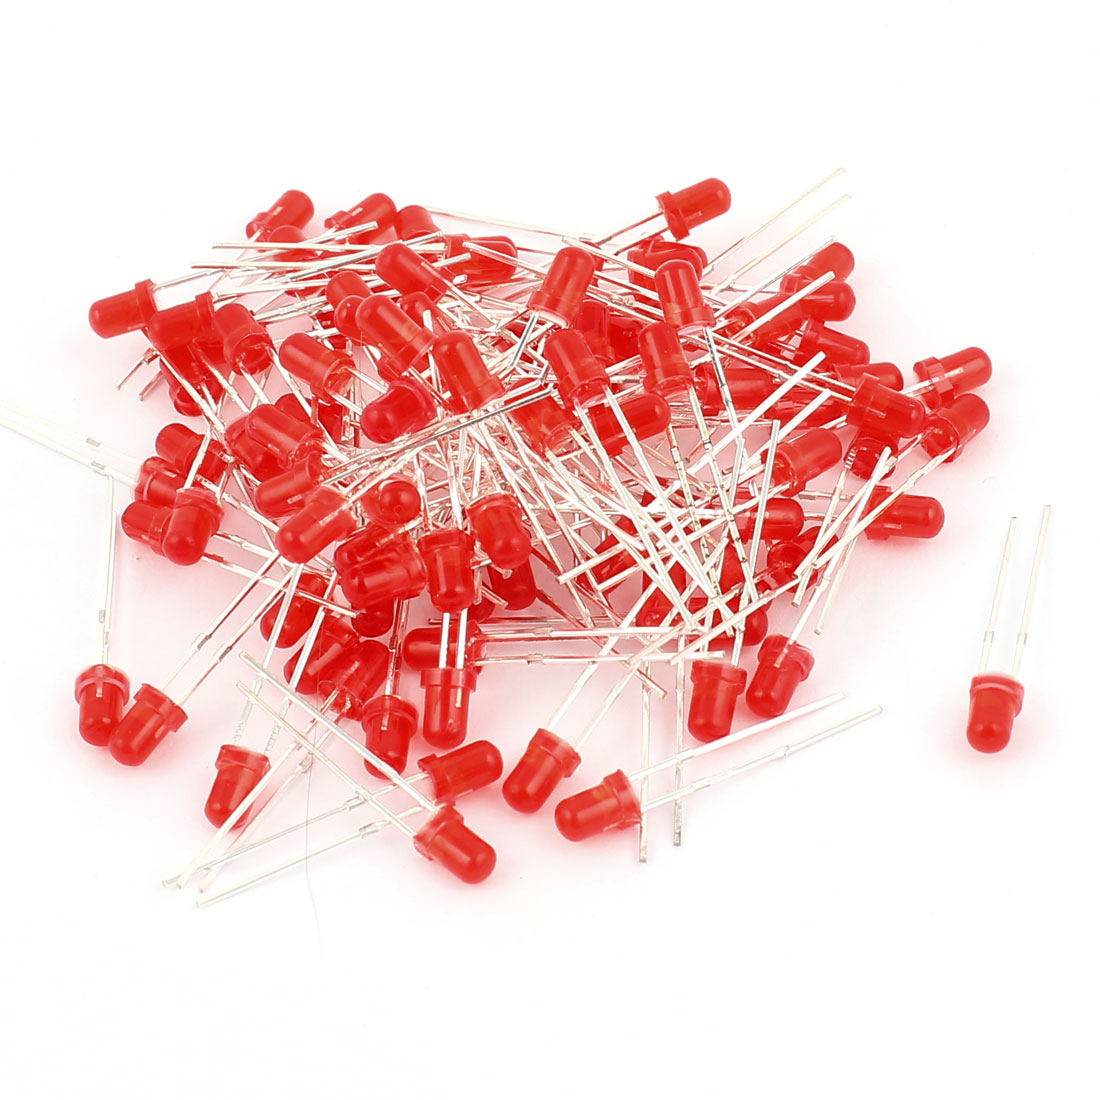 100pcs 3mm Round Top Red Emitting Diode LED Luminous Light